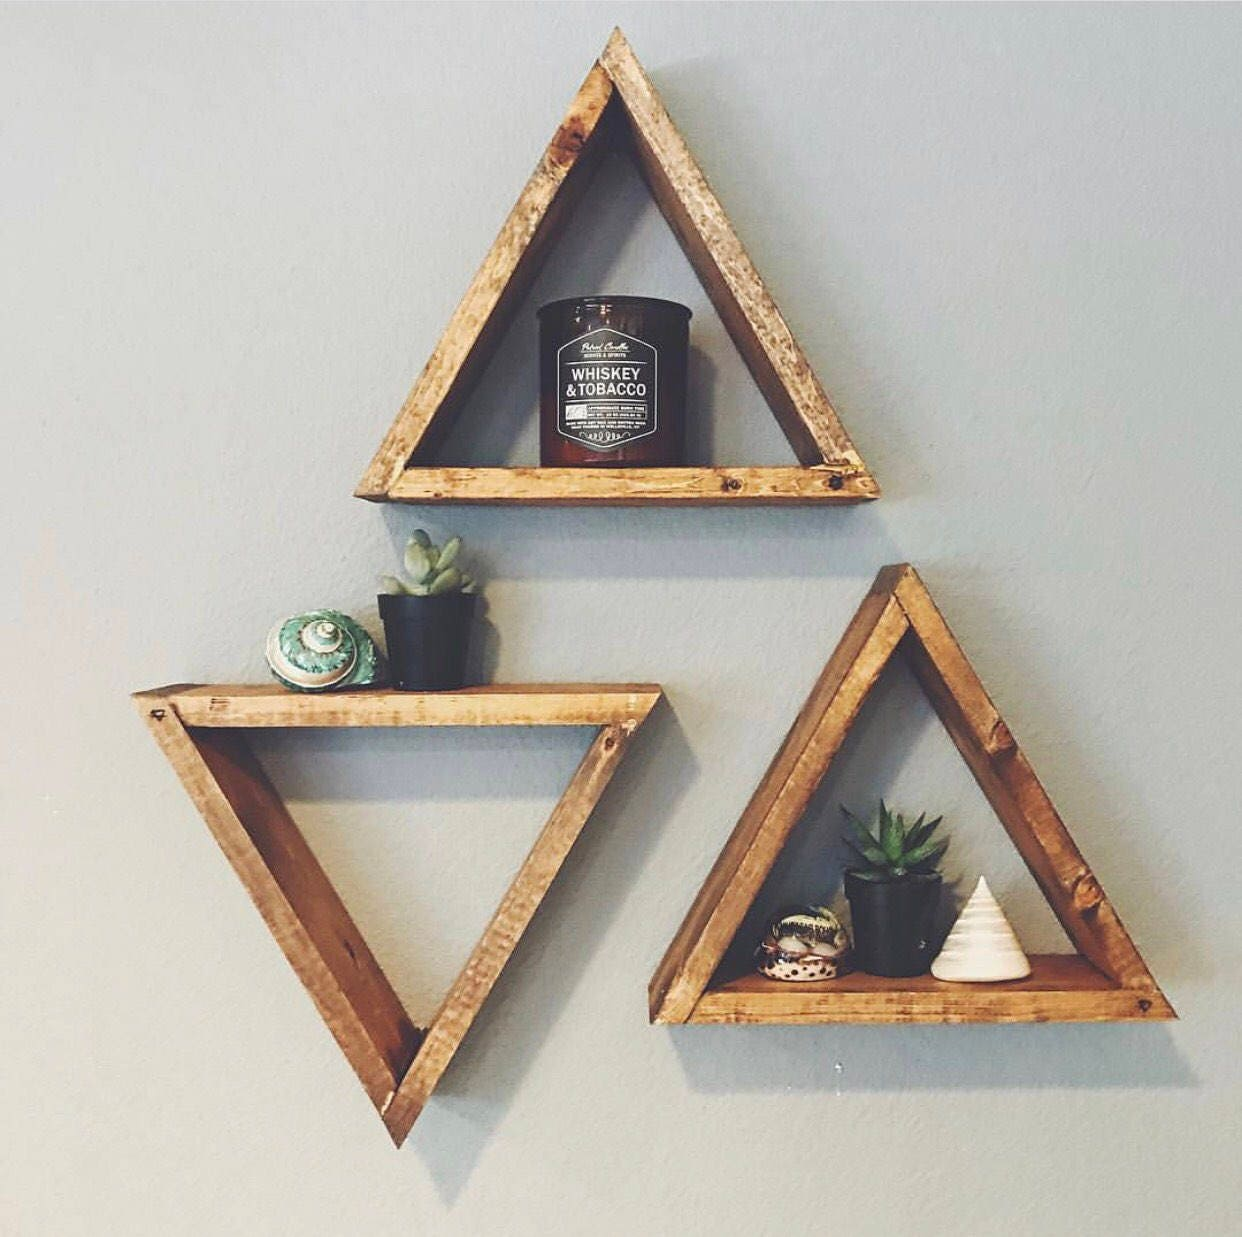 Single wood triangle shelf geometric wall shelf boho decor - Triangular bookshelf ...